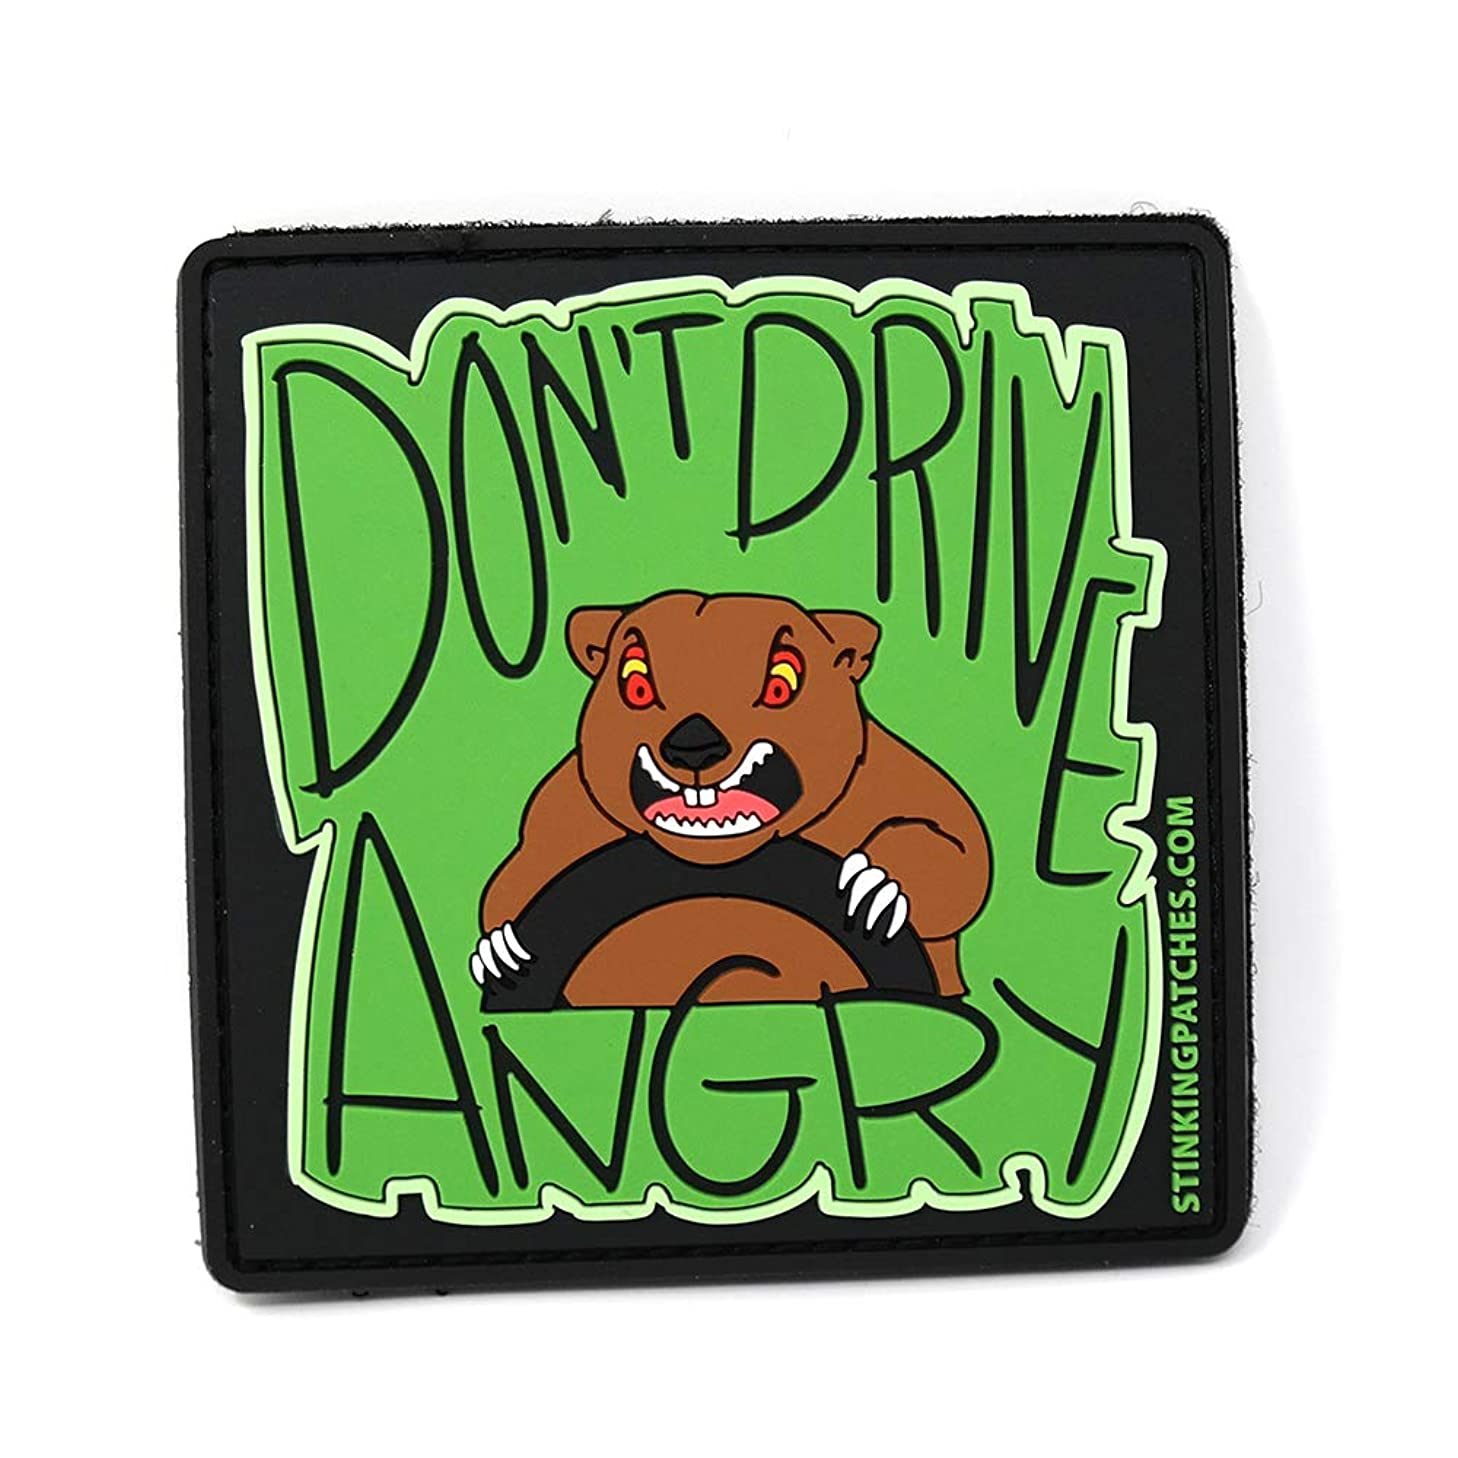 Don't Drive Angry PVC Tactical Patch | Groundhog Day Inspired | Funny Morale Patch